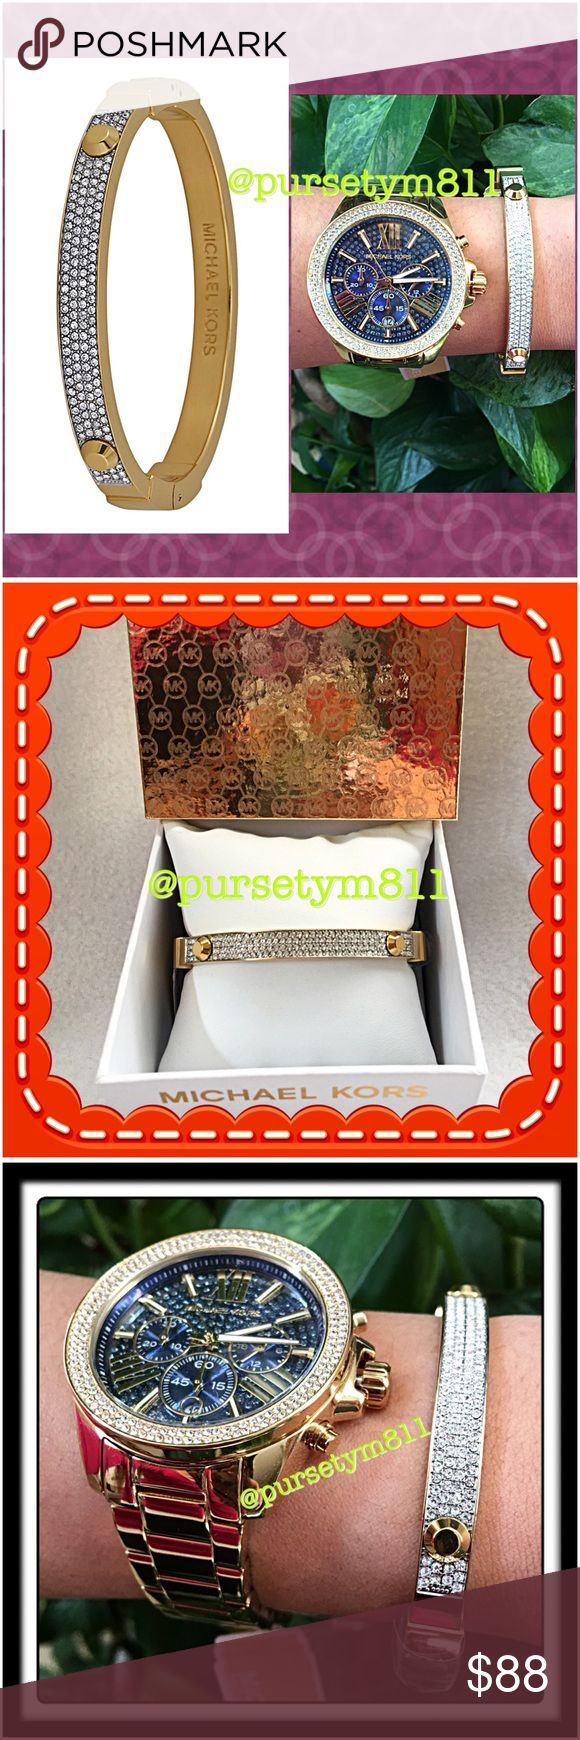 Authentic Michael Kors Gold Crystal Pave Bangle % AUTHENTIC! Stunning crystal pave studded bangle from Michael Kors! Crafted in yellow gold tone plated steel . Hinge closure. New with tag. Watch not included. Box included. PRICE FIRM. Michael Kors Jewelry Bracelets